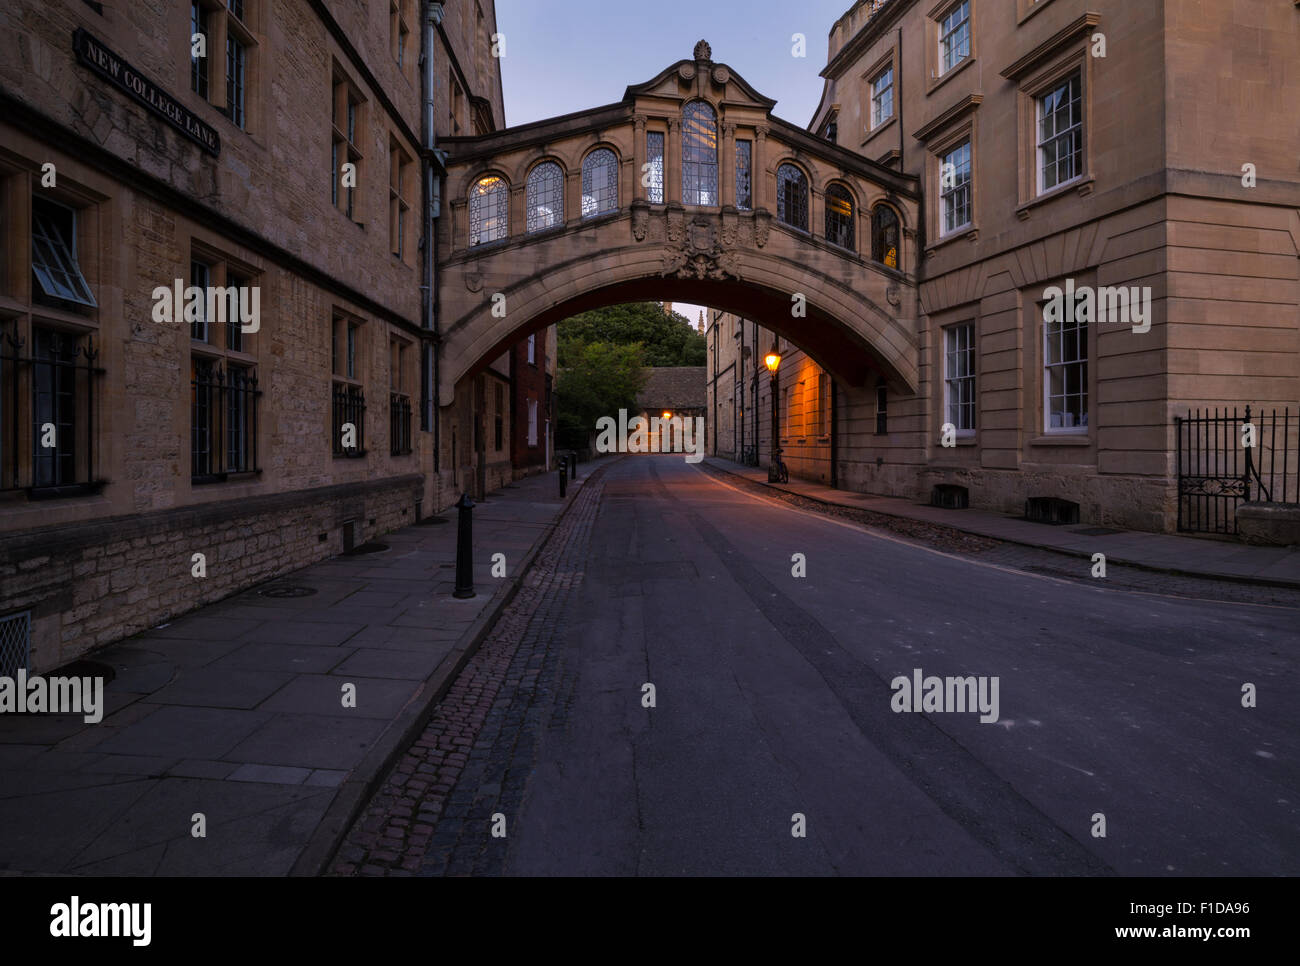 The bridge of sighs in oxford city centre linking two unversity buildings together - Stock Image